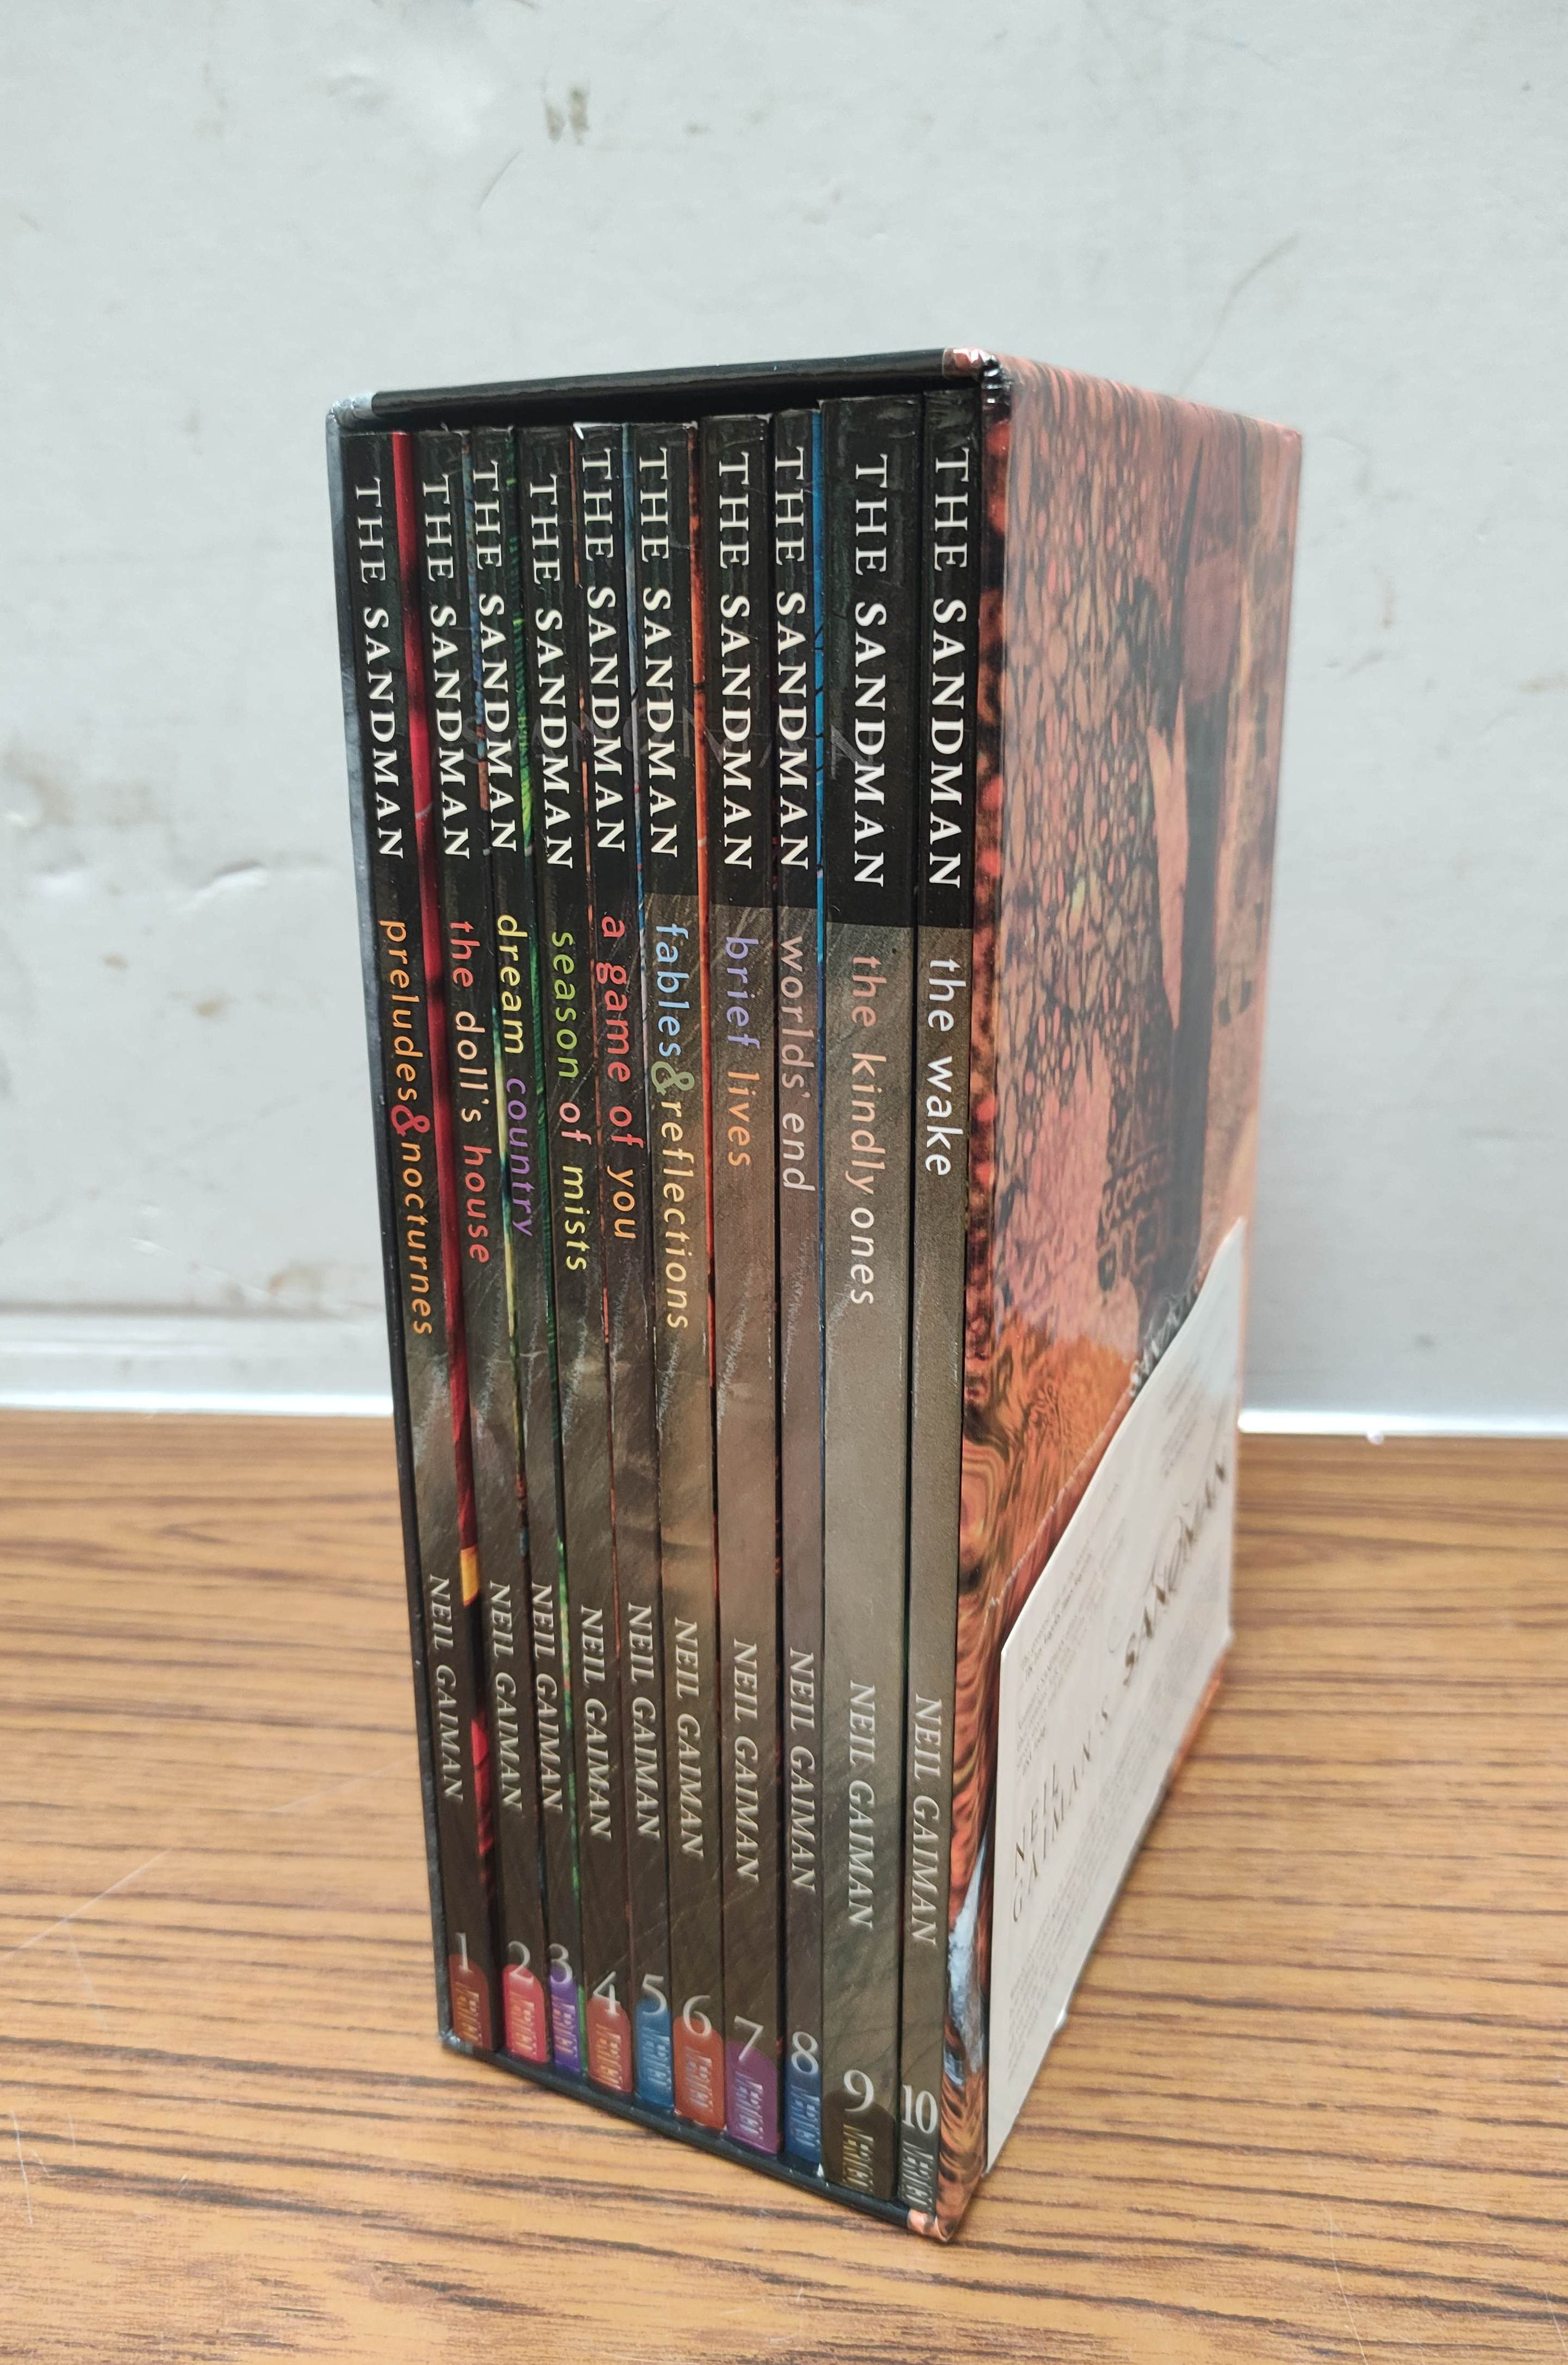 GAIMAN NEIL.The Sandman. Vols. 1 to 10 in wrappers & slip case; also 5 others, Neil Gaiman. - Image 3 of 17